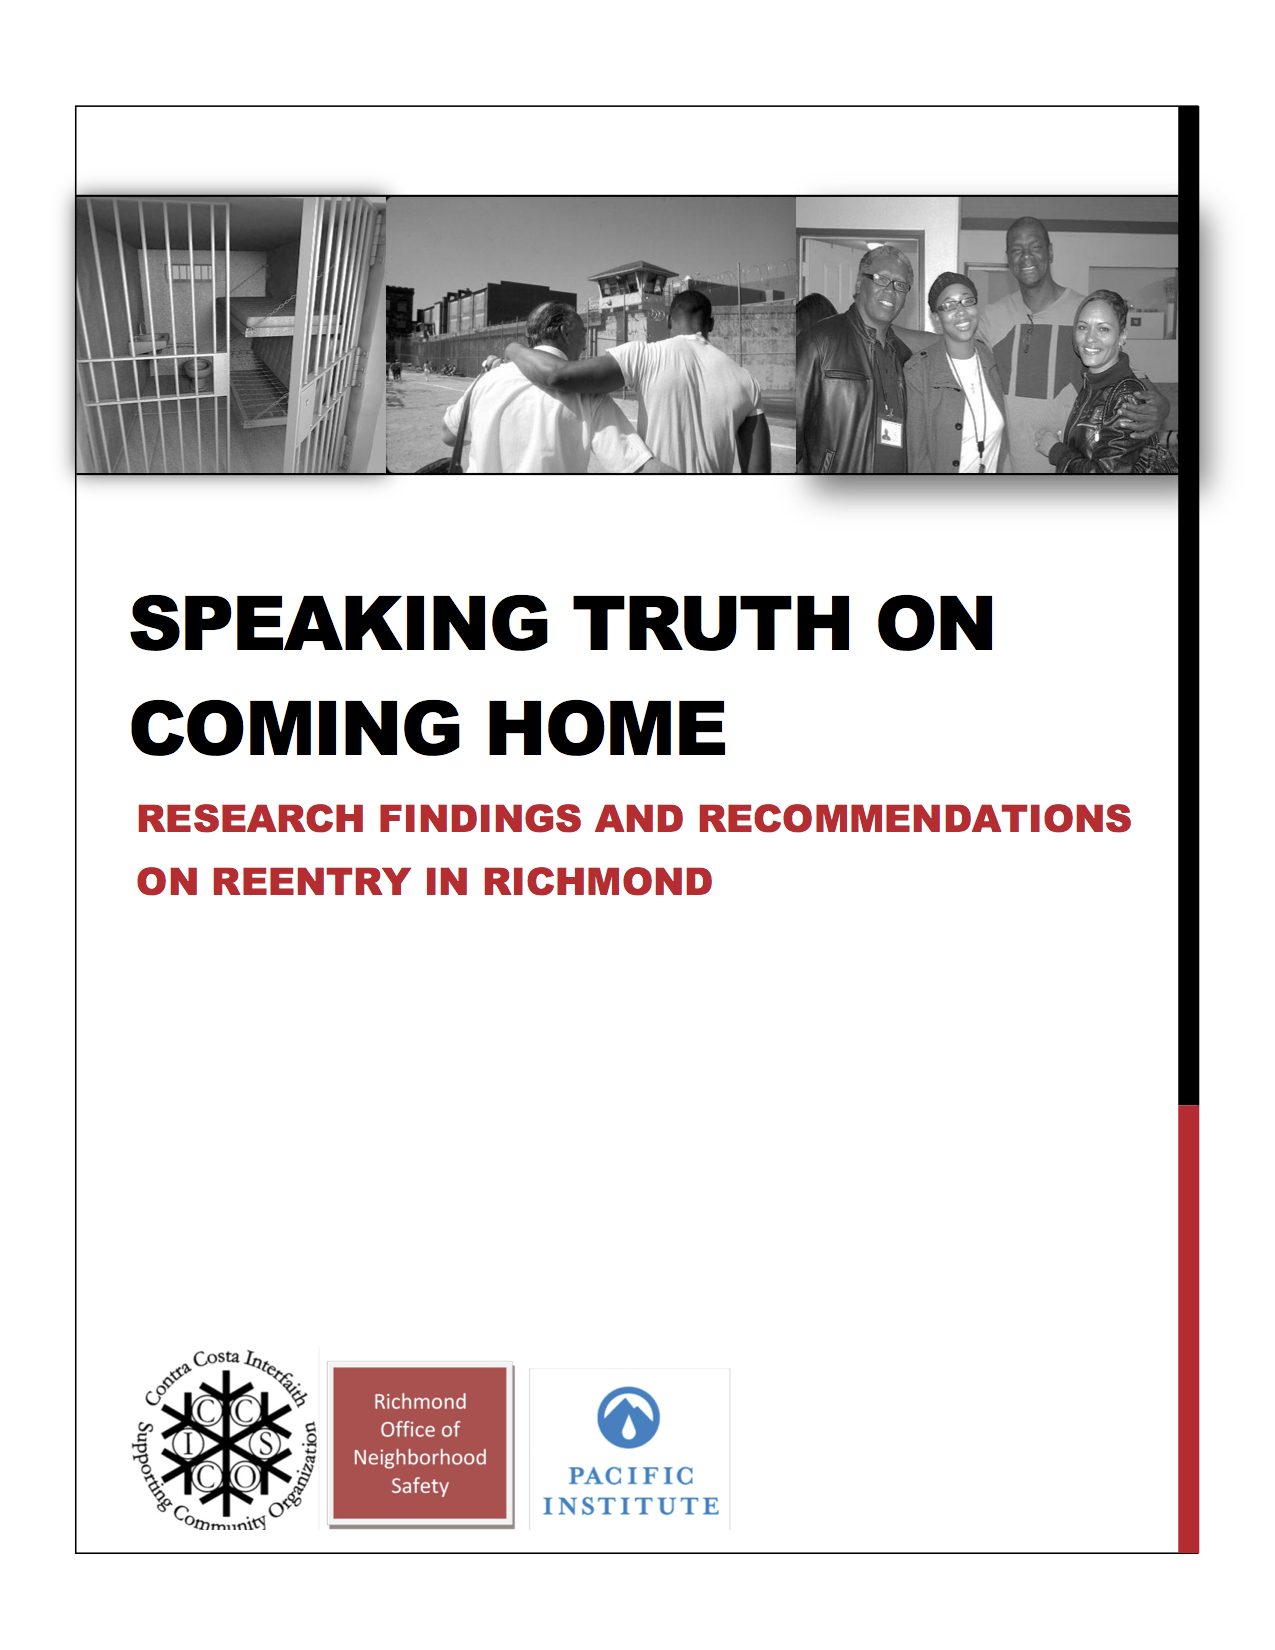 Speaking the truth on coming home reentry_report3 (1).png